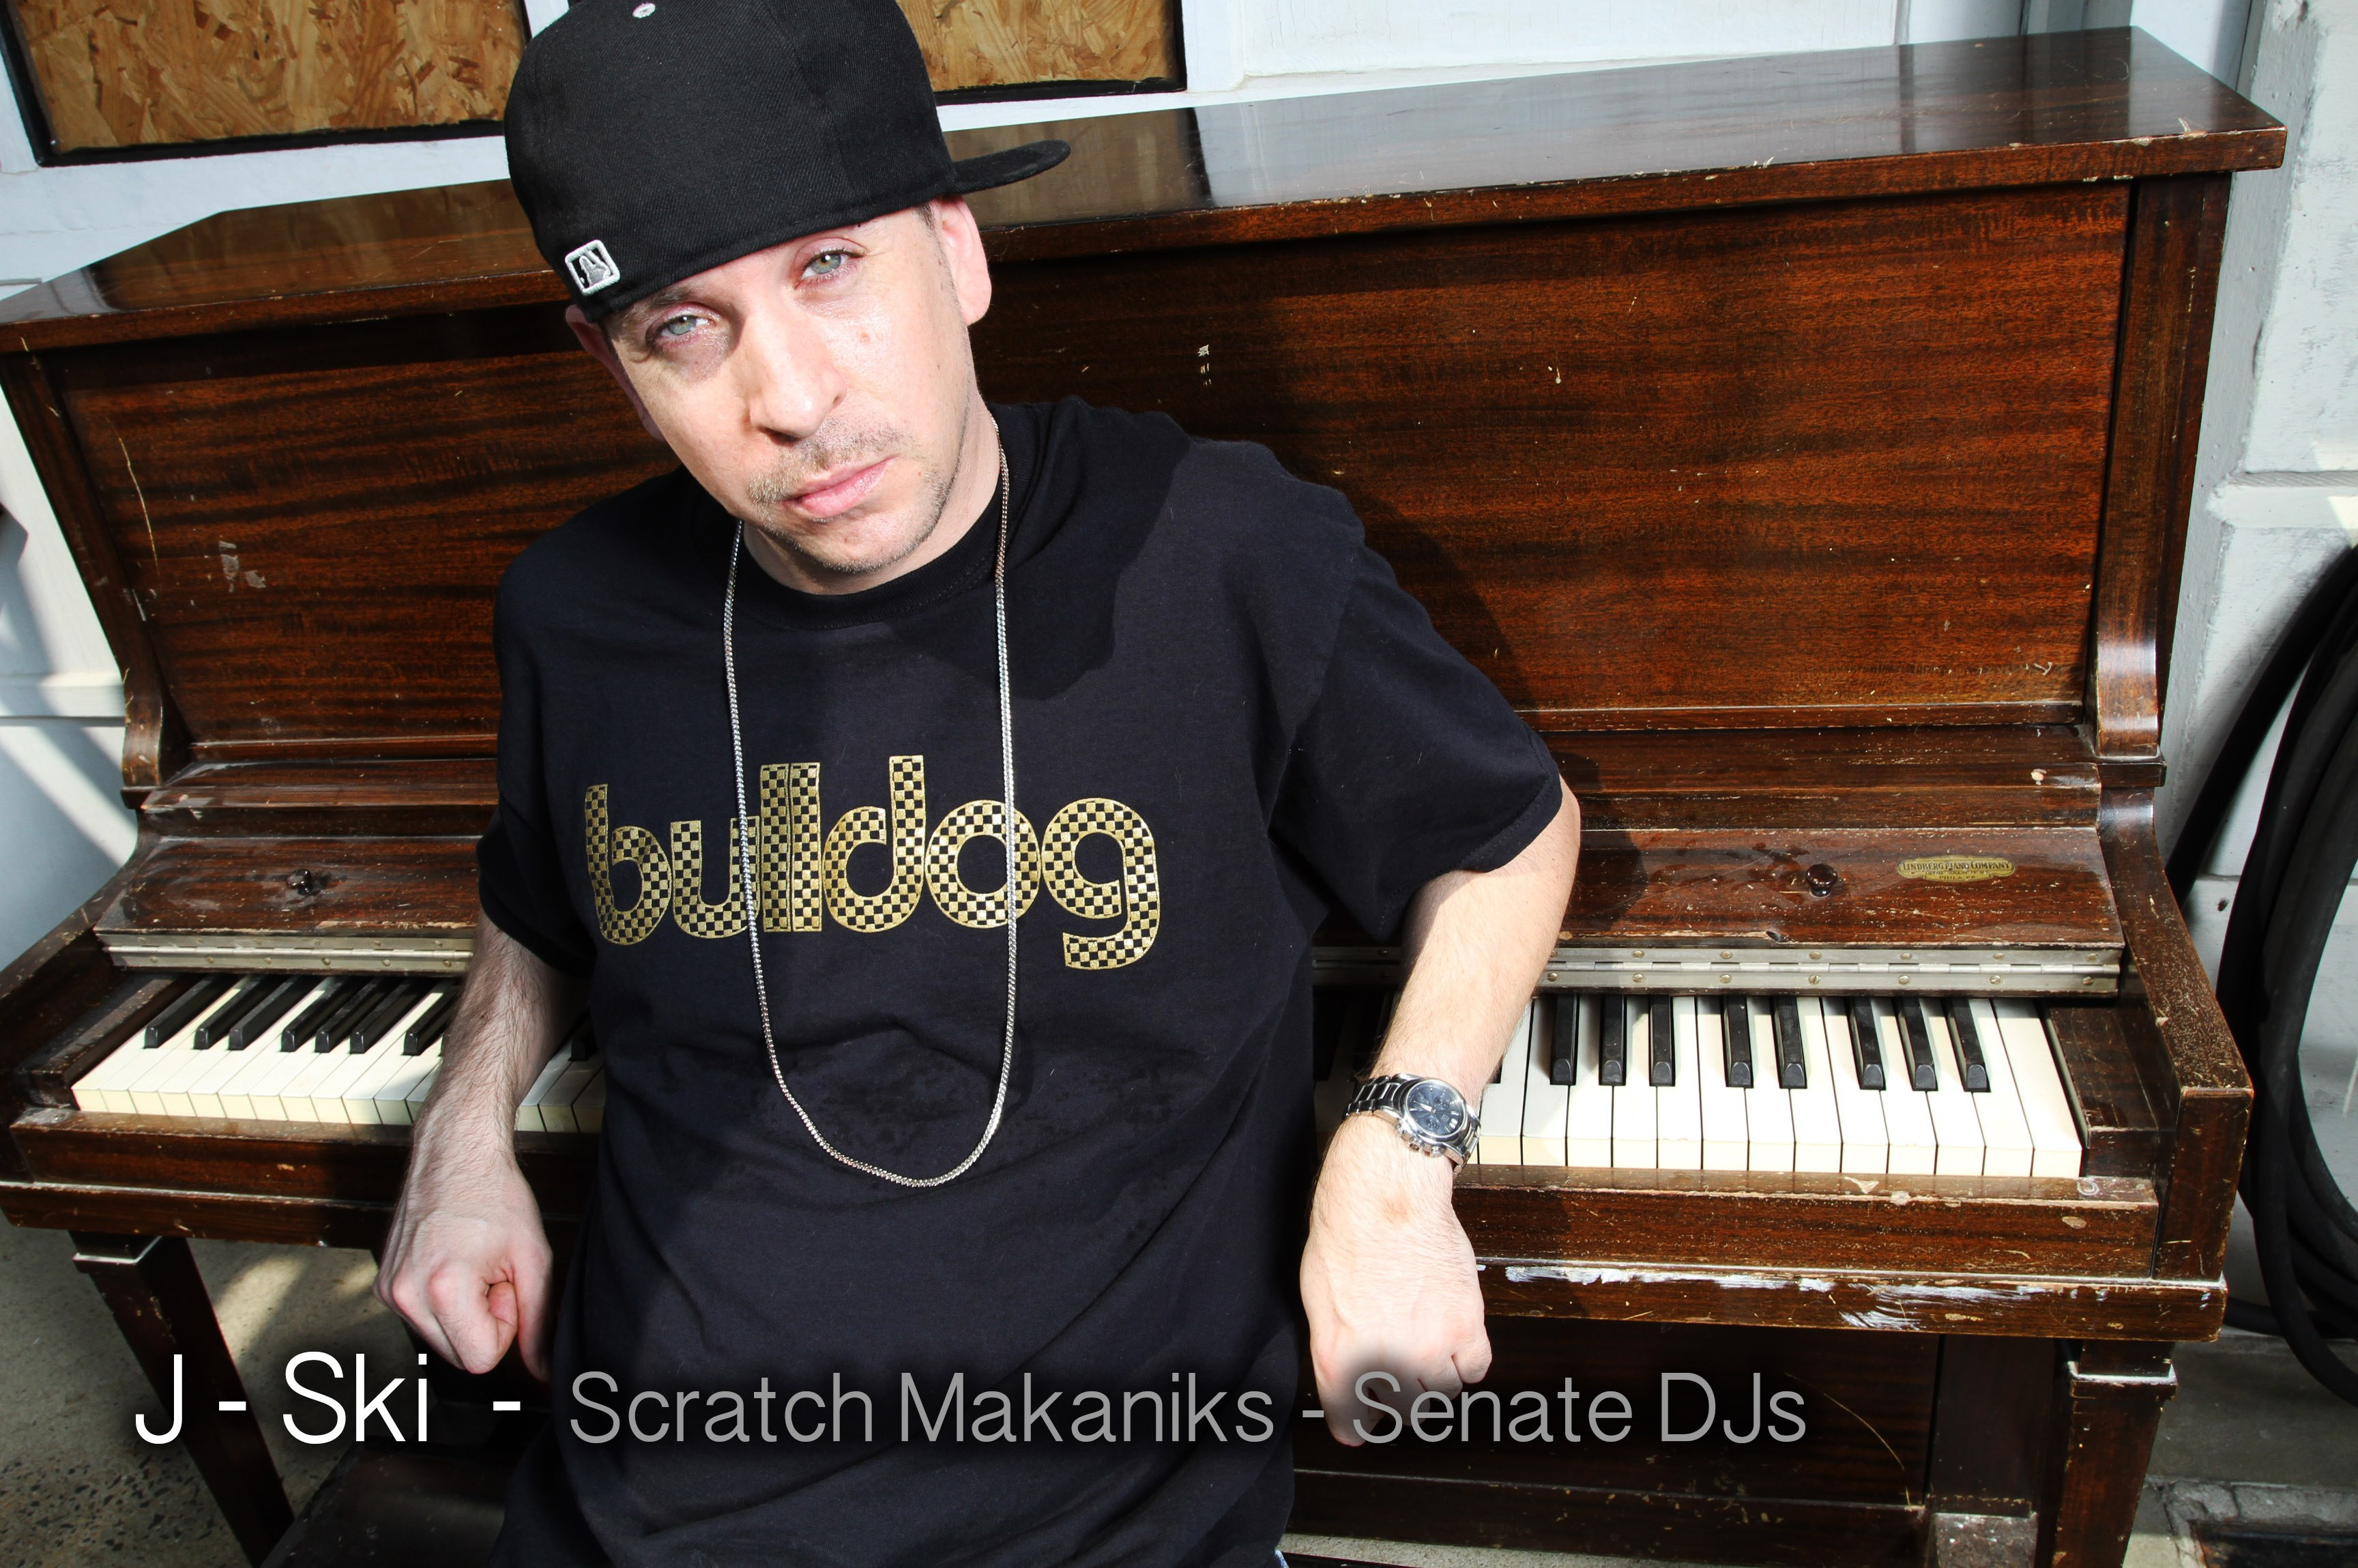 J Ski_piano_buldog_shirt_black_hat